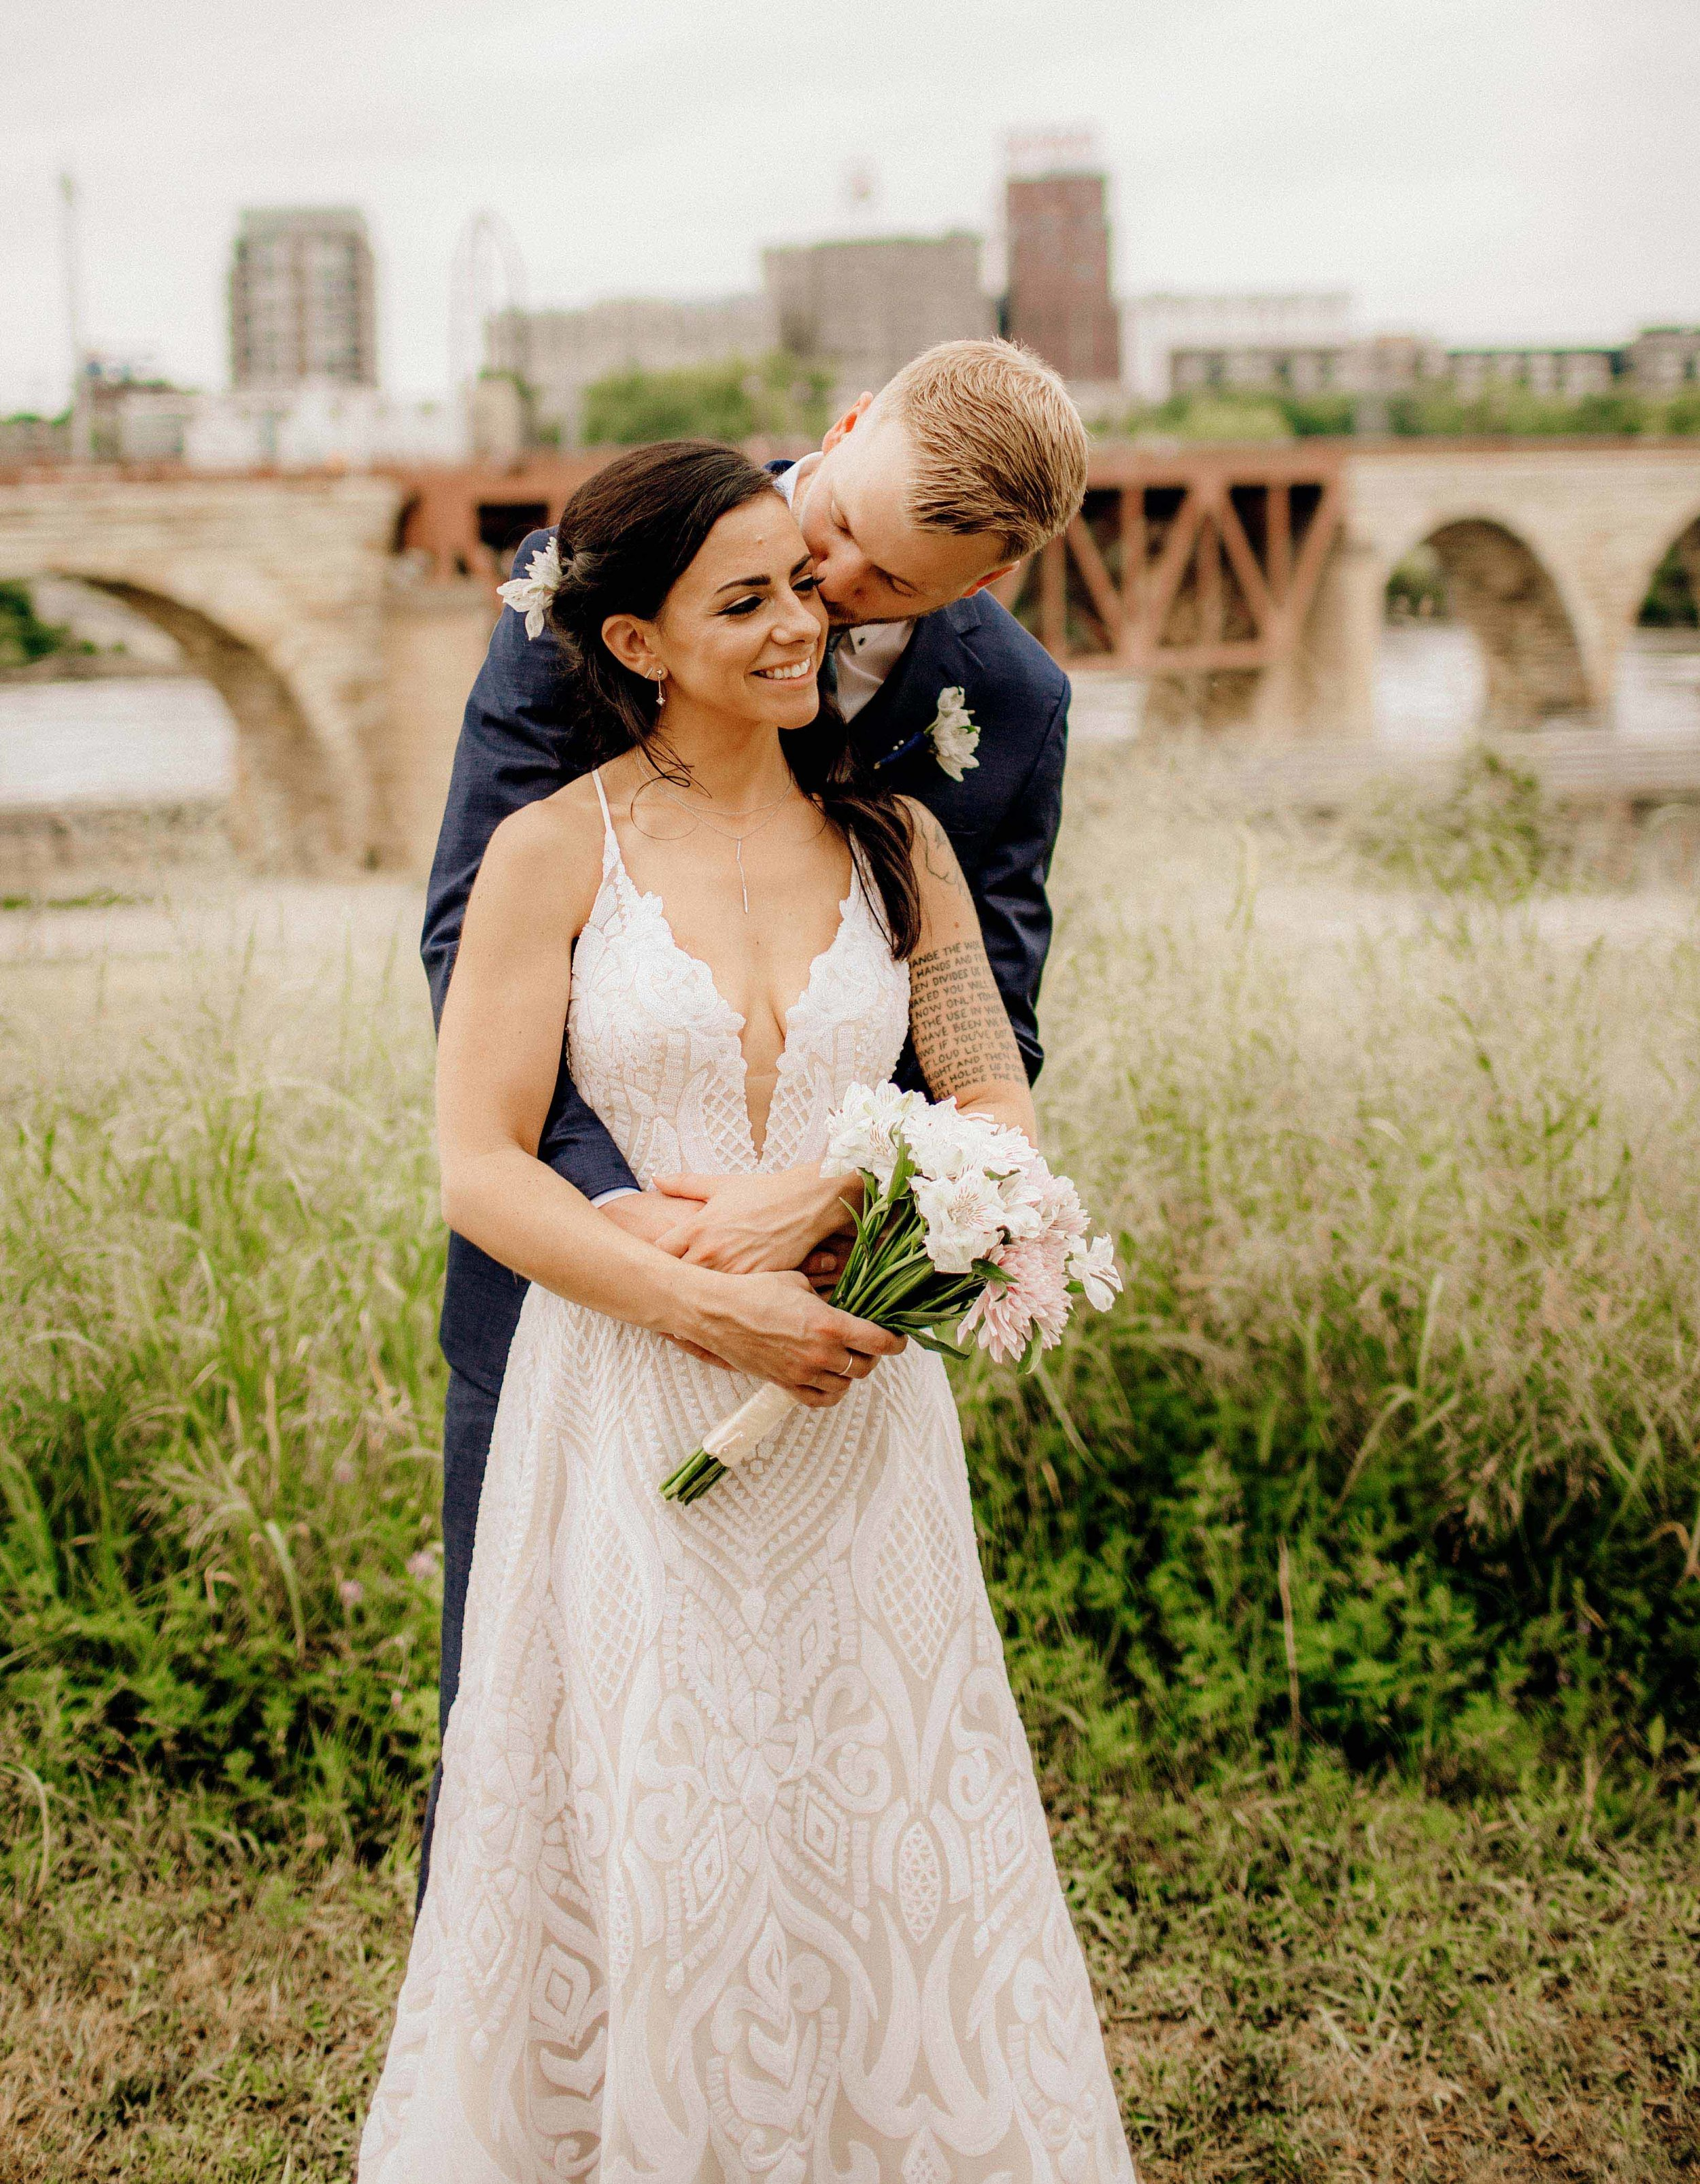 Lily + Michael, Part V, The Bride and Groom-40.jpg